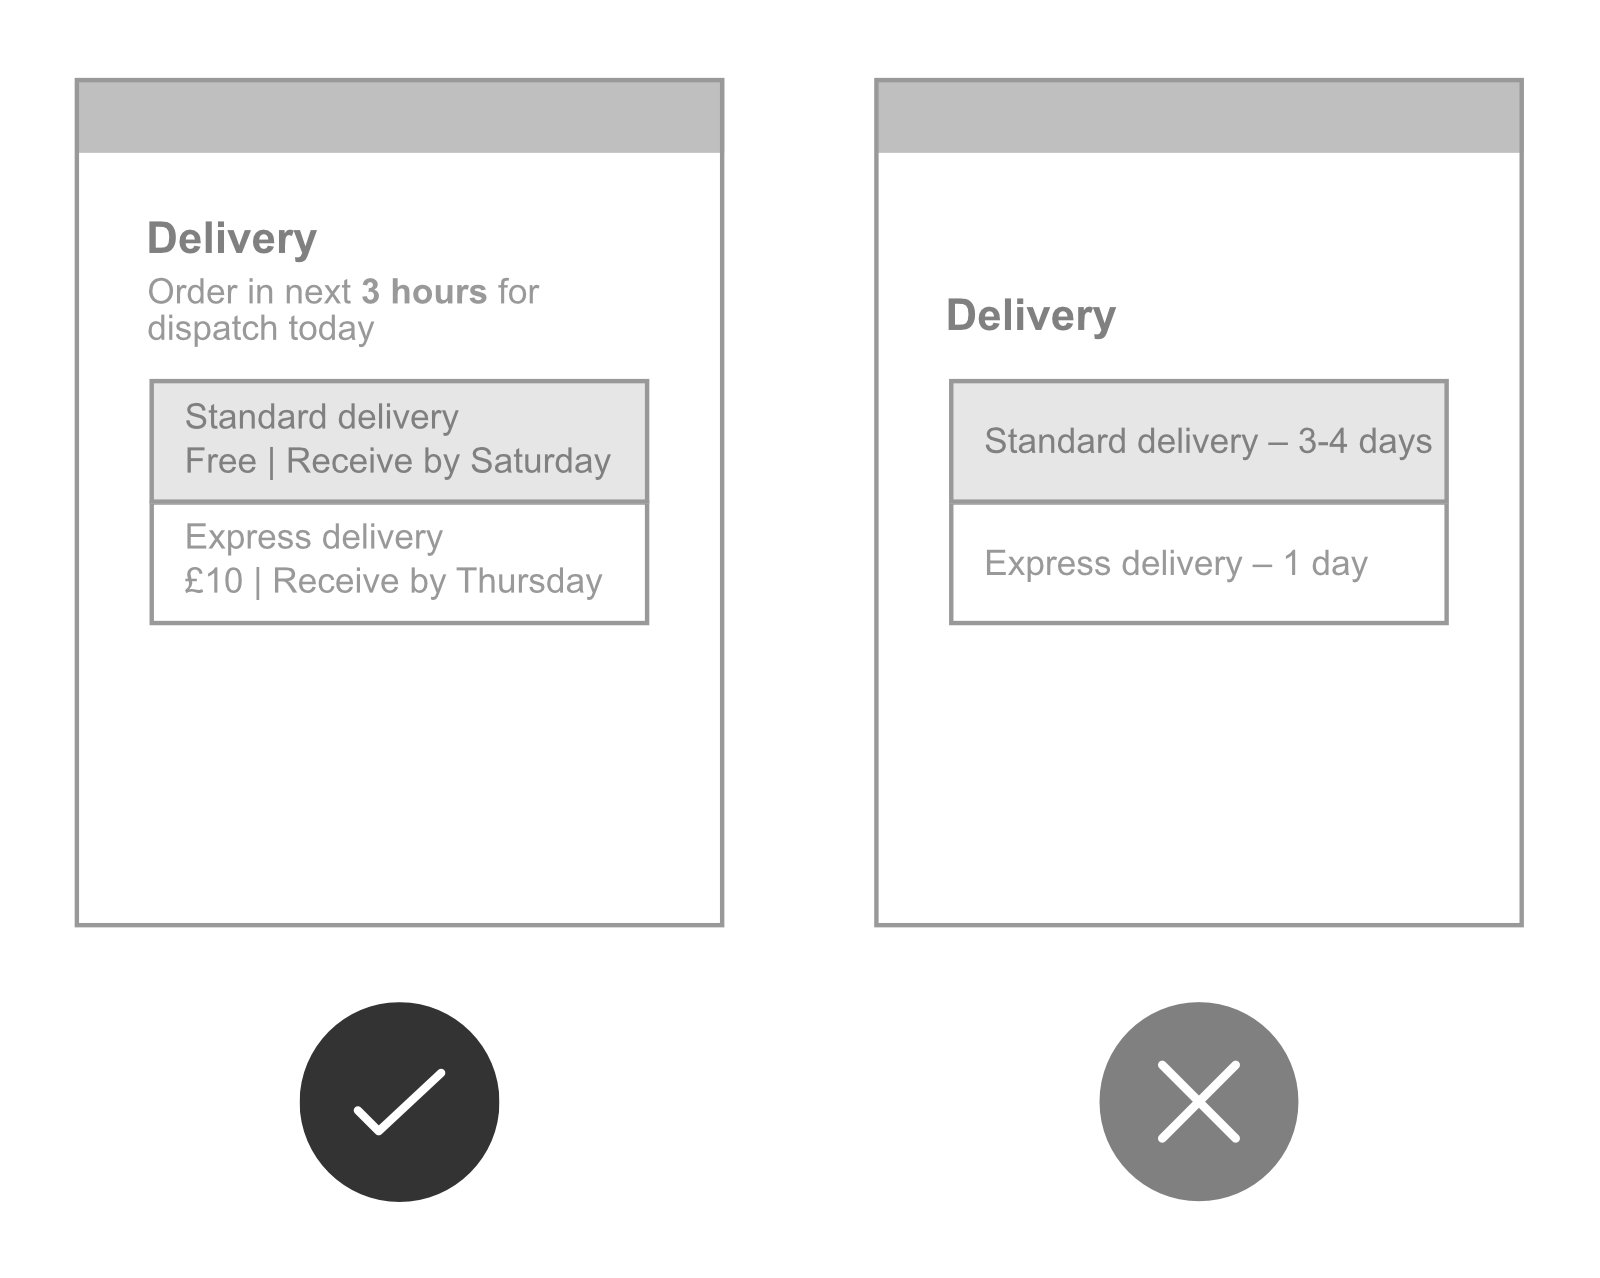 Delivery information in checkout